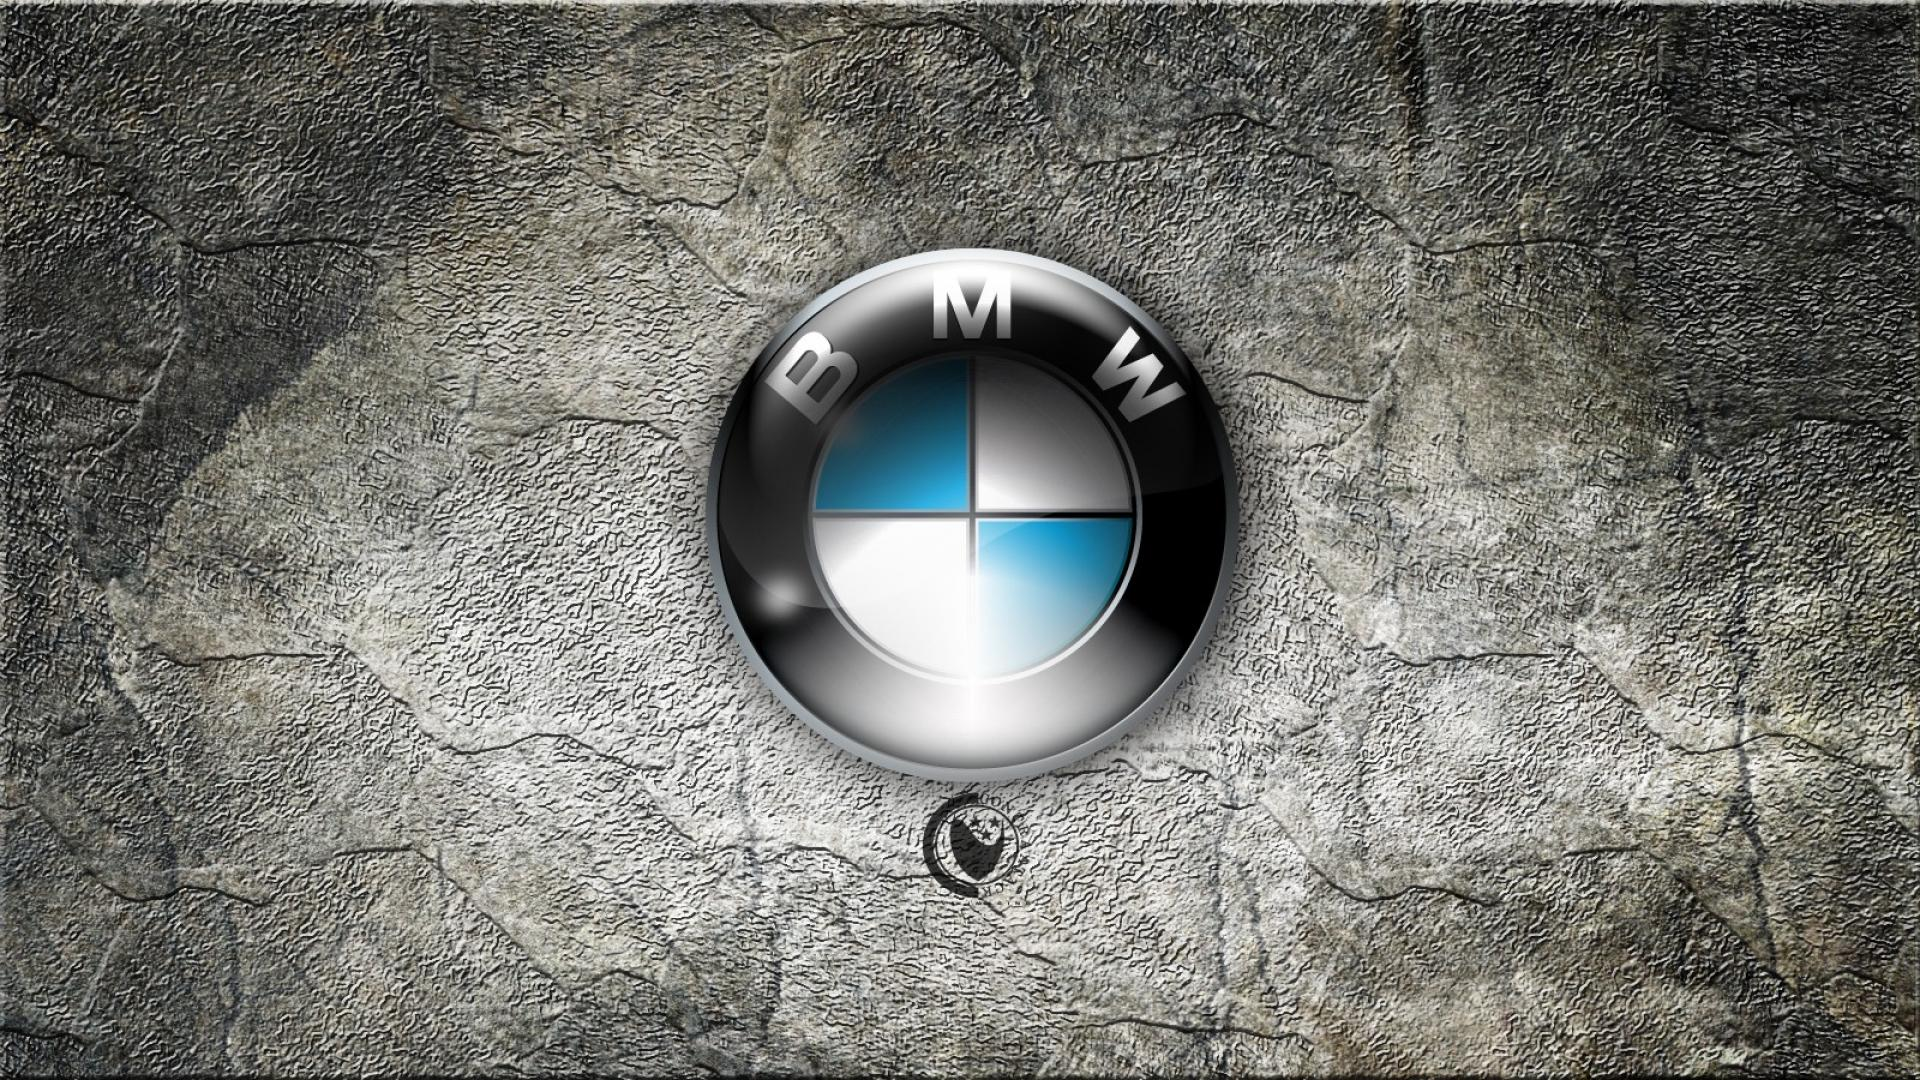 BMW Car Brand Logo HD Wallpapers for all resolution HD 1920x1080 1920x1080